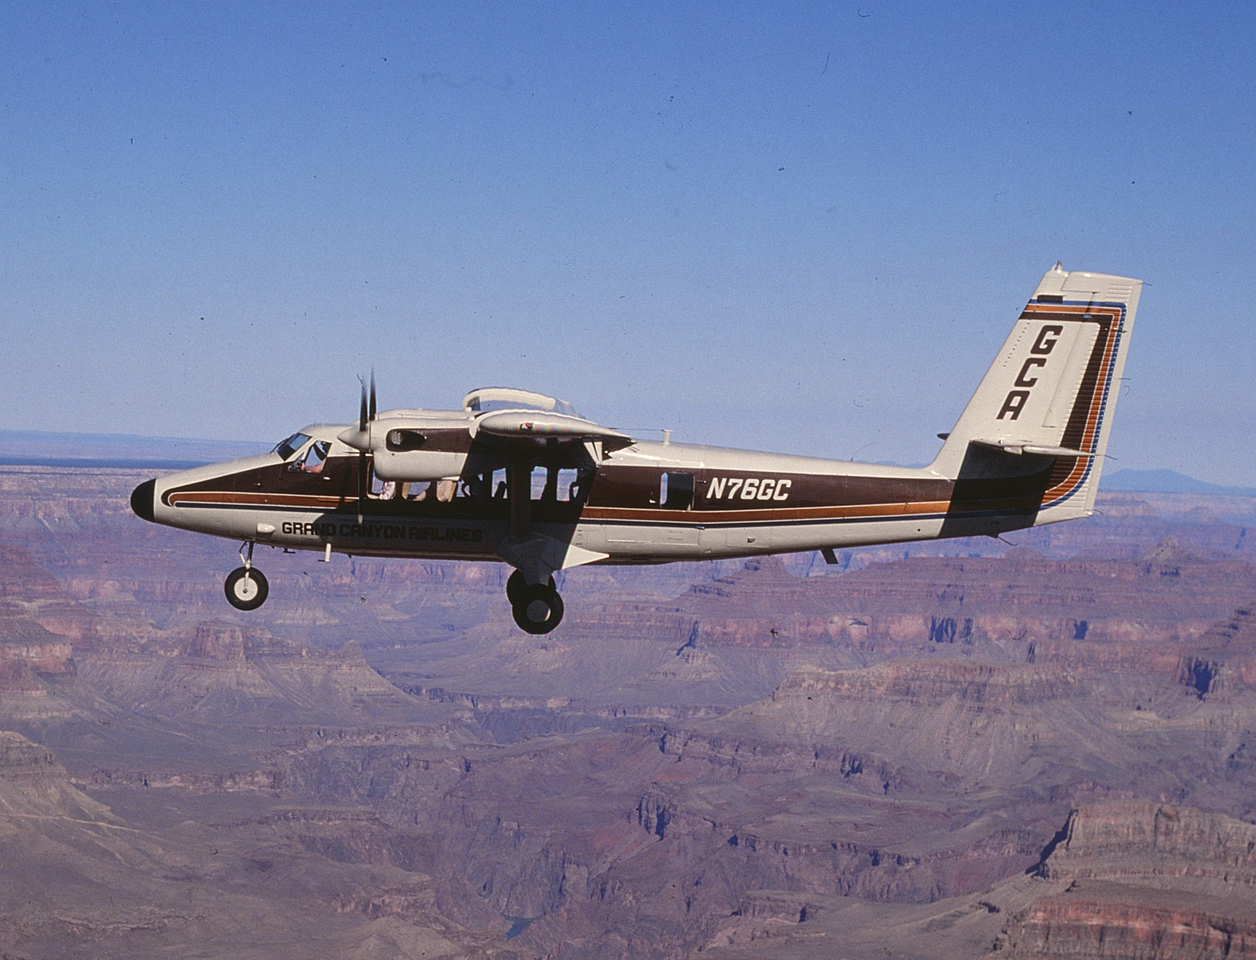 """Twin Otter """"N76GC"""" seen here in a promotional photo over the canyon was the first Twin Otter """"Vistaliner"""" to be delivered to Grand Canyon Airlines.<br /> <br /> To offer the passengers a slow, comfortable ride over the canyon, the pilots would normally fly the air tour at around 90 knots indicated air speed with the wing flaps extended to 10 degrees."""